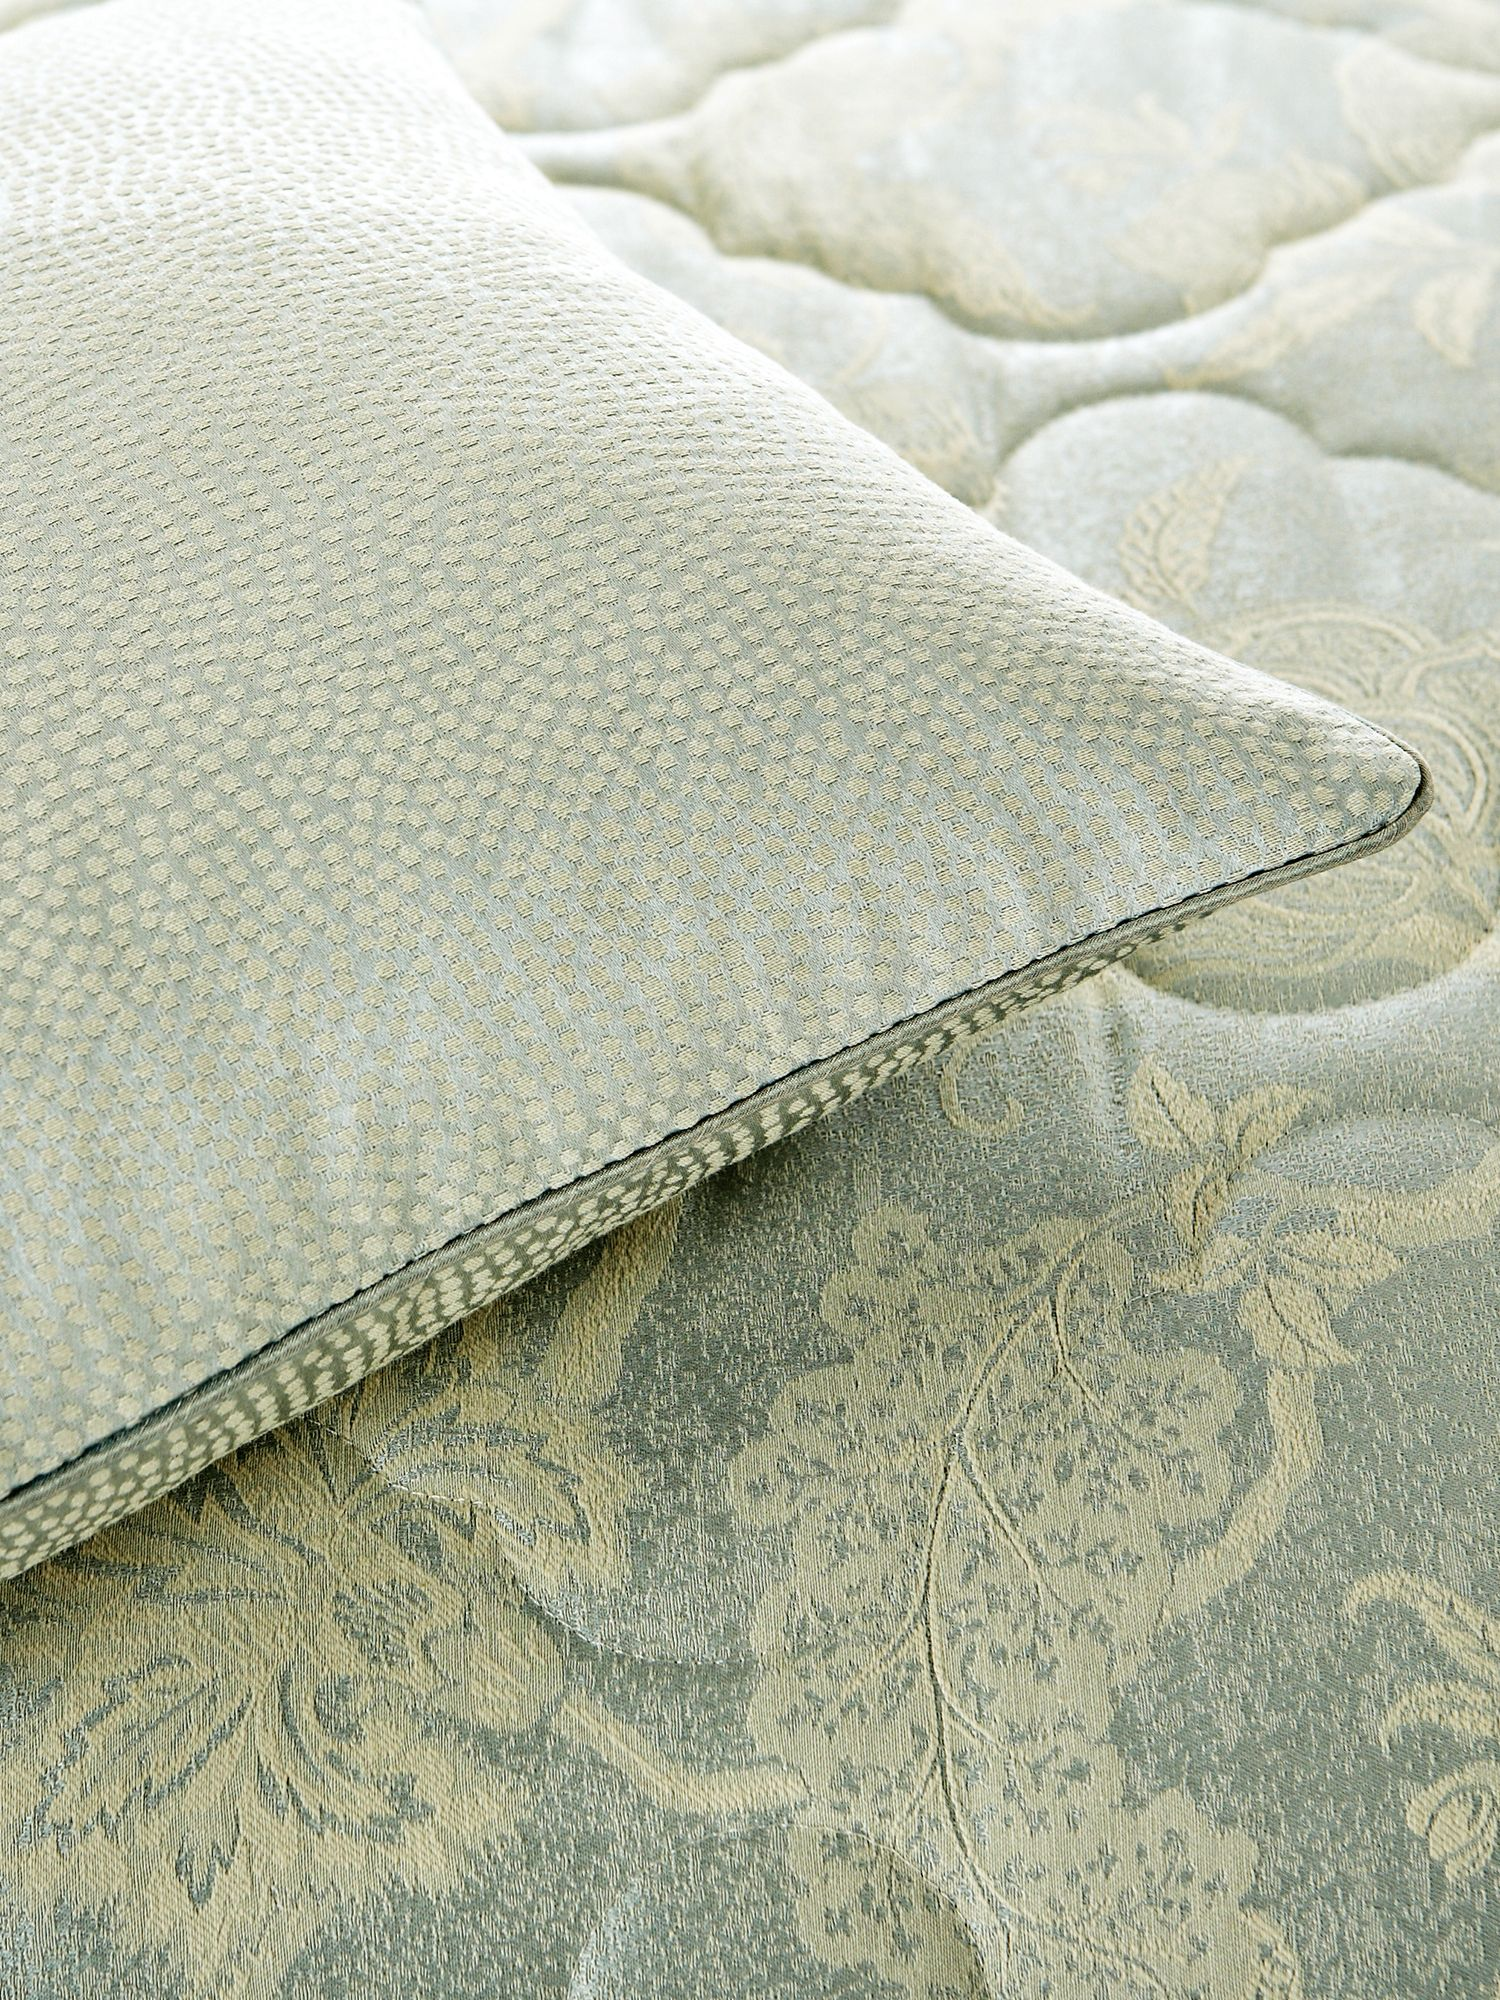 Palampore cushion